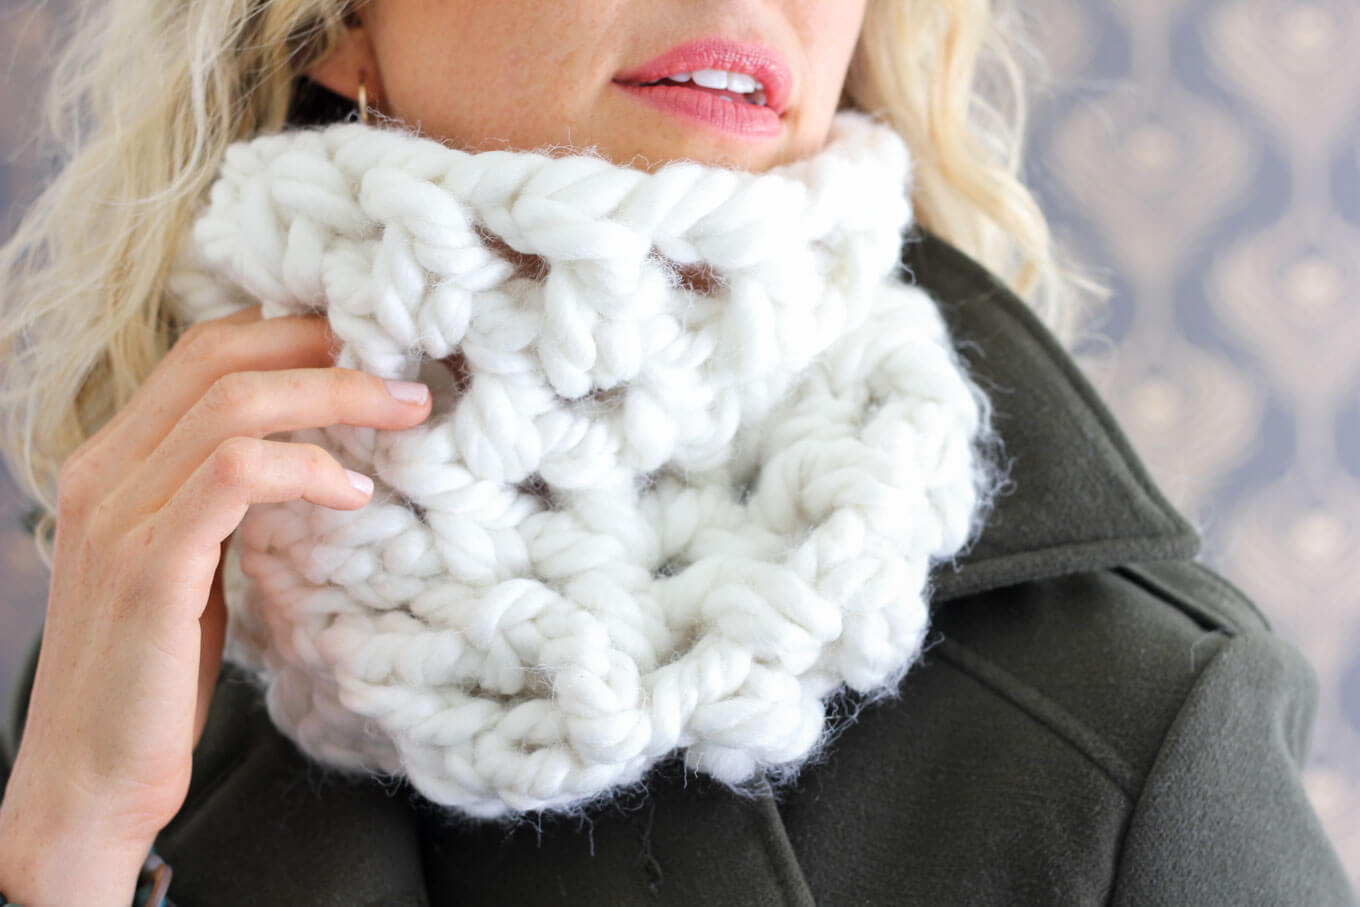 What You Should Know Before Proceeding Crochet Chunky Yarn Patterns One Hour Chunky Cowl Free Crochet Pattern Make Do Crew